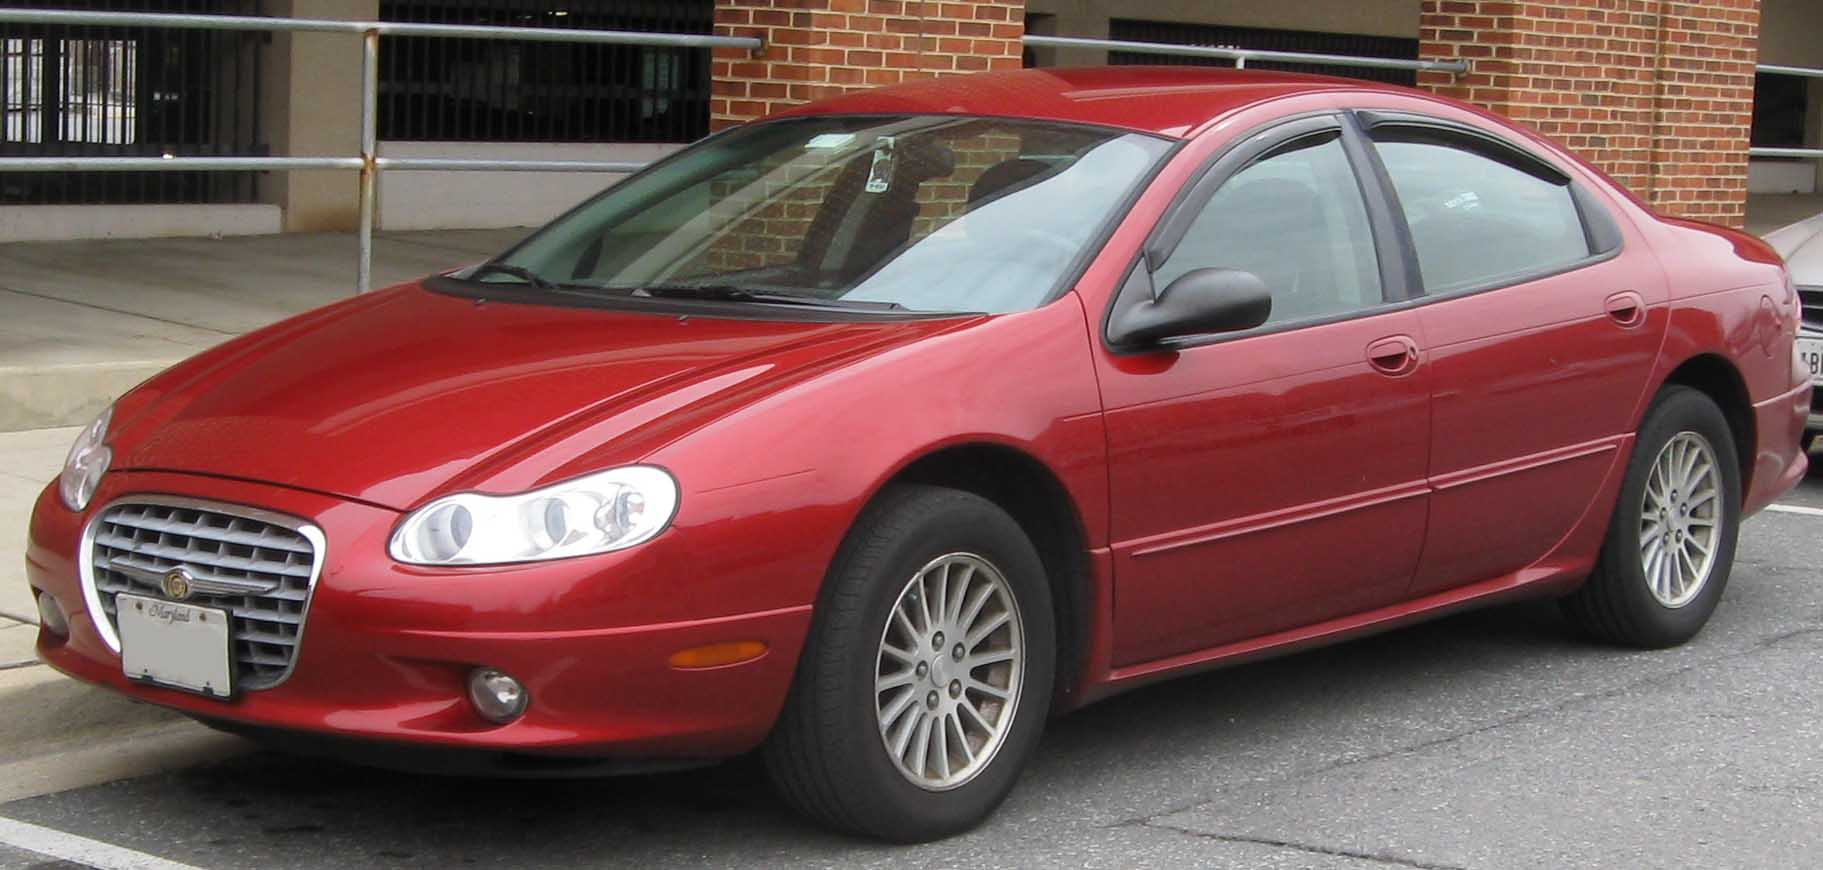 2002 Chrysler Concorde #3